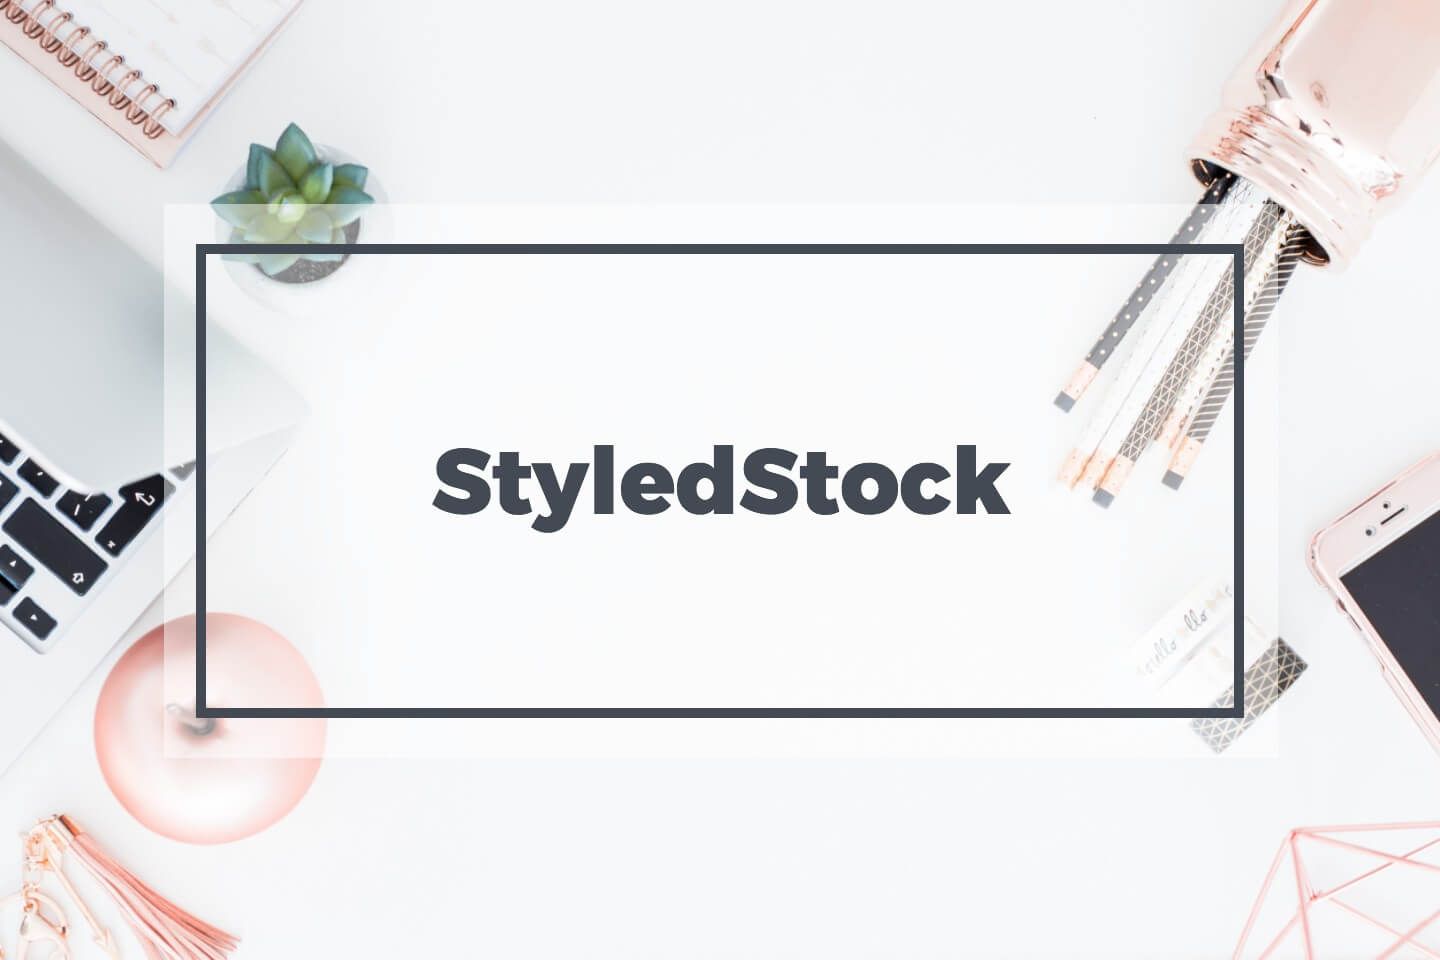 StyledStock free stock photos